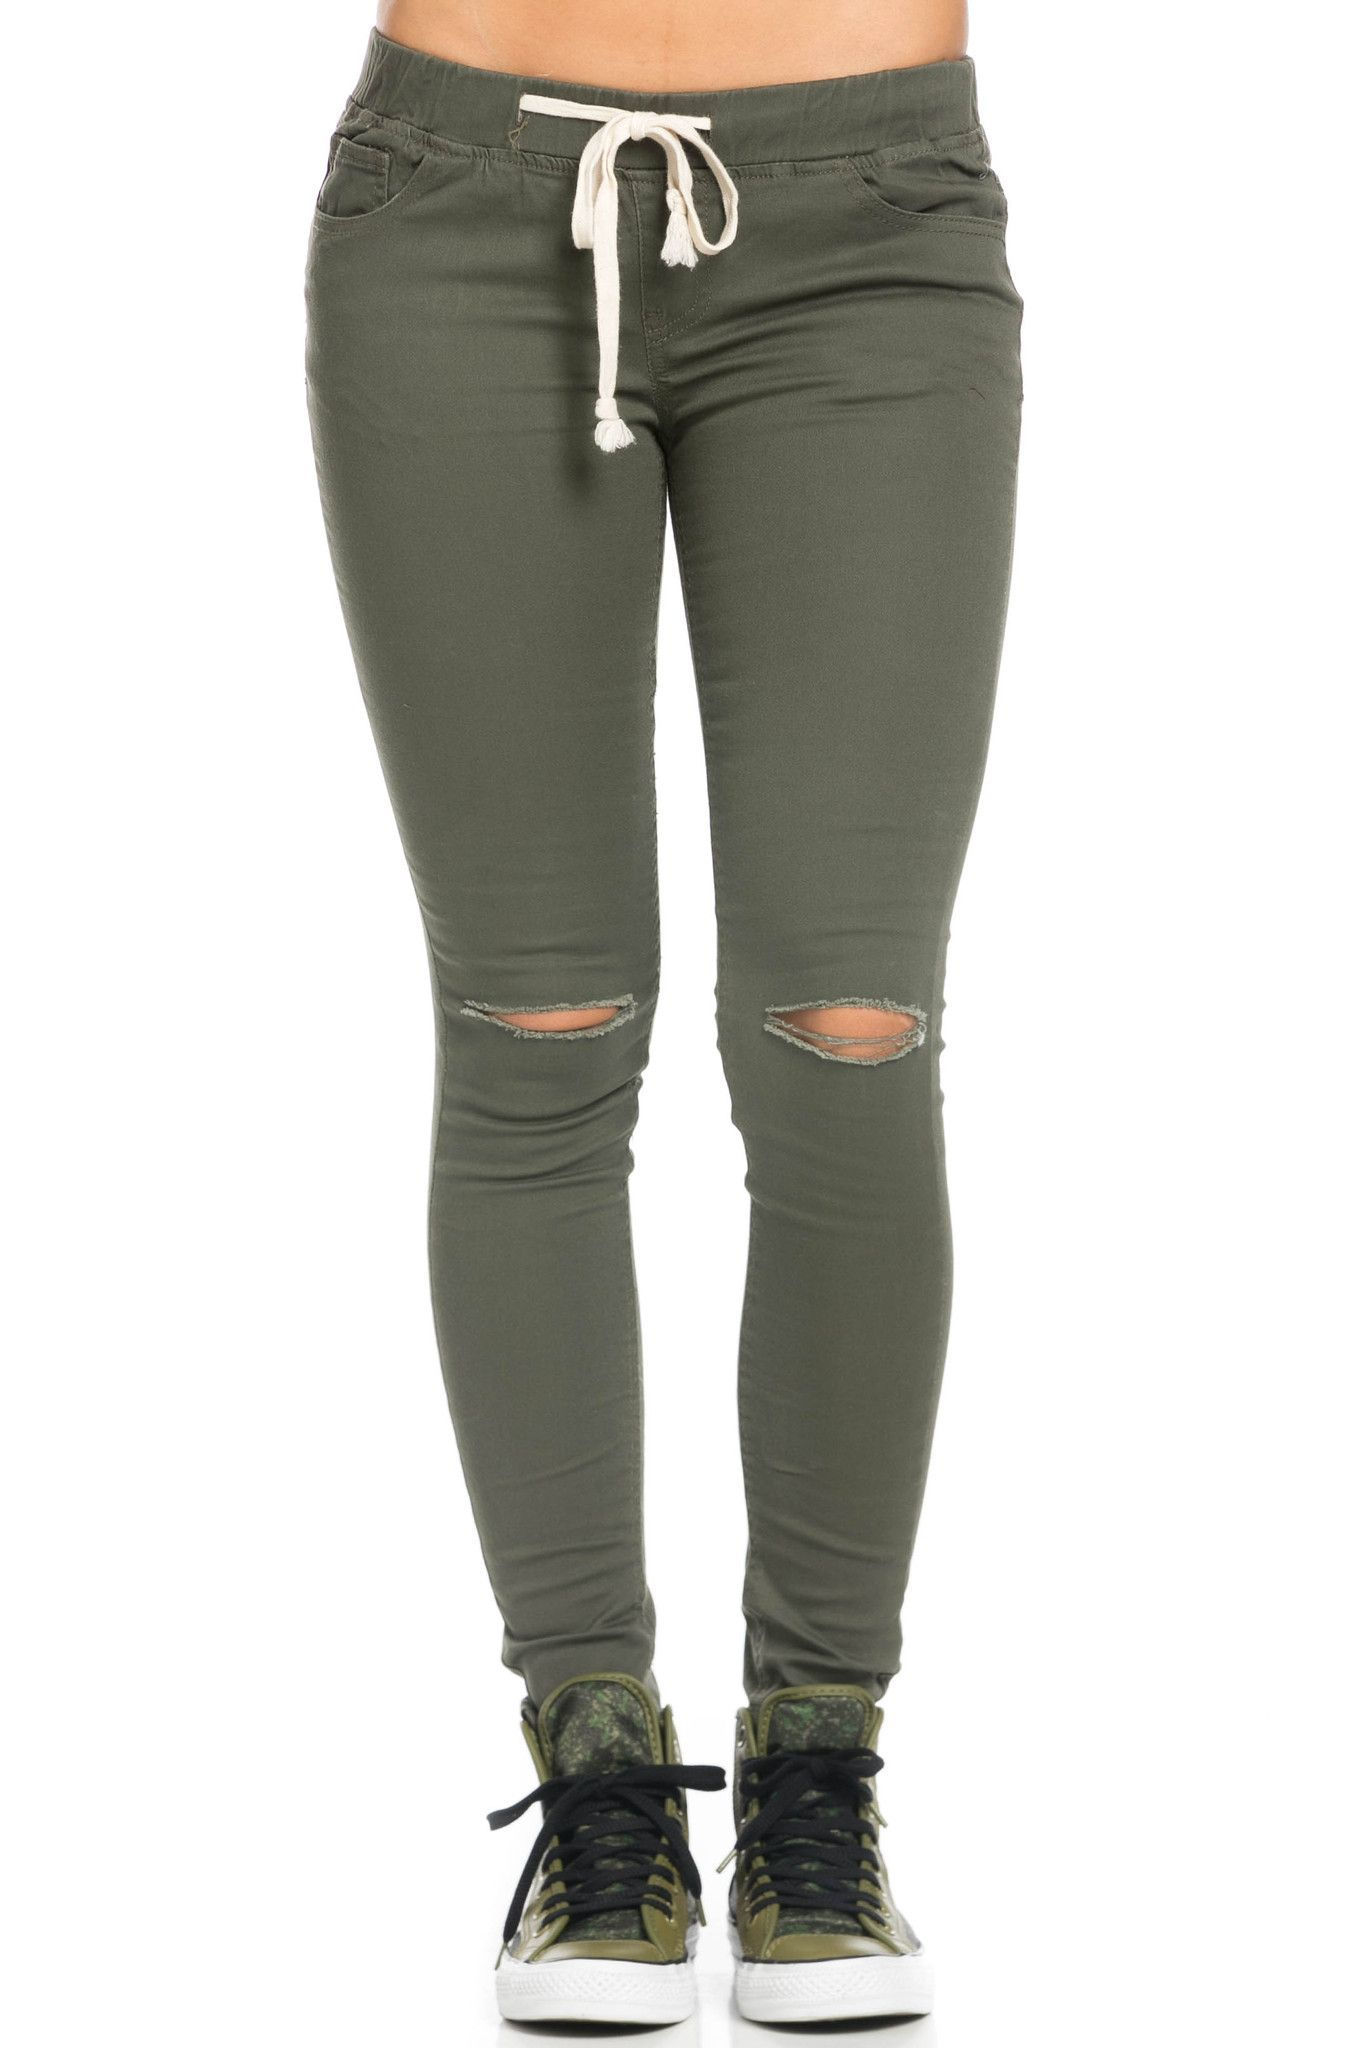 5b2cc4b50ad16 Distressed at the knee. A skinny, olive colored mid-rise jogger jean  featuring…